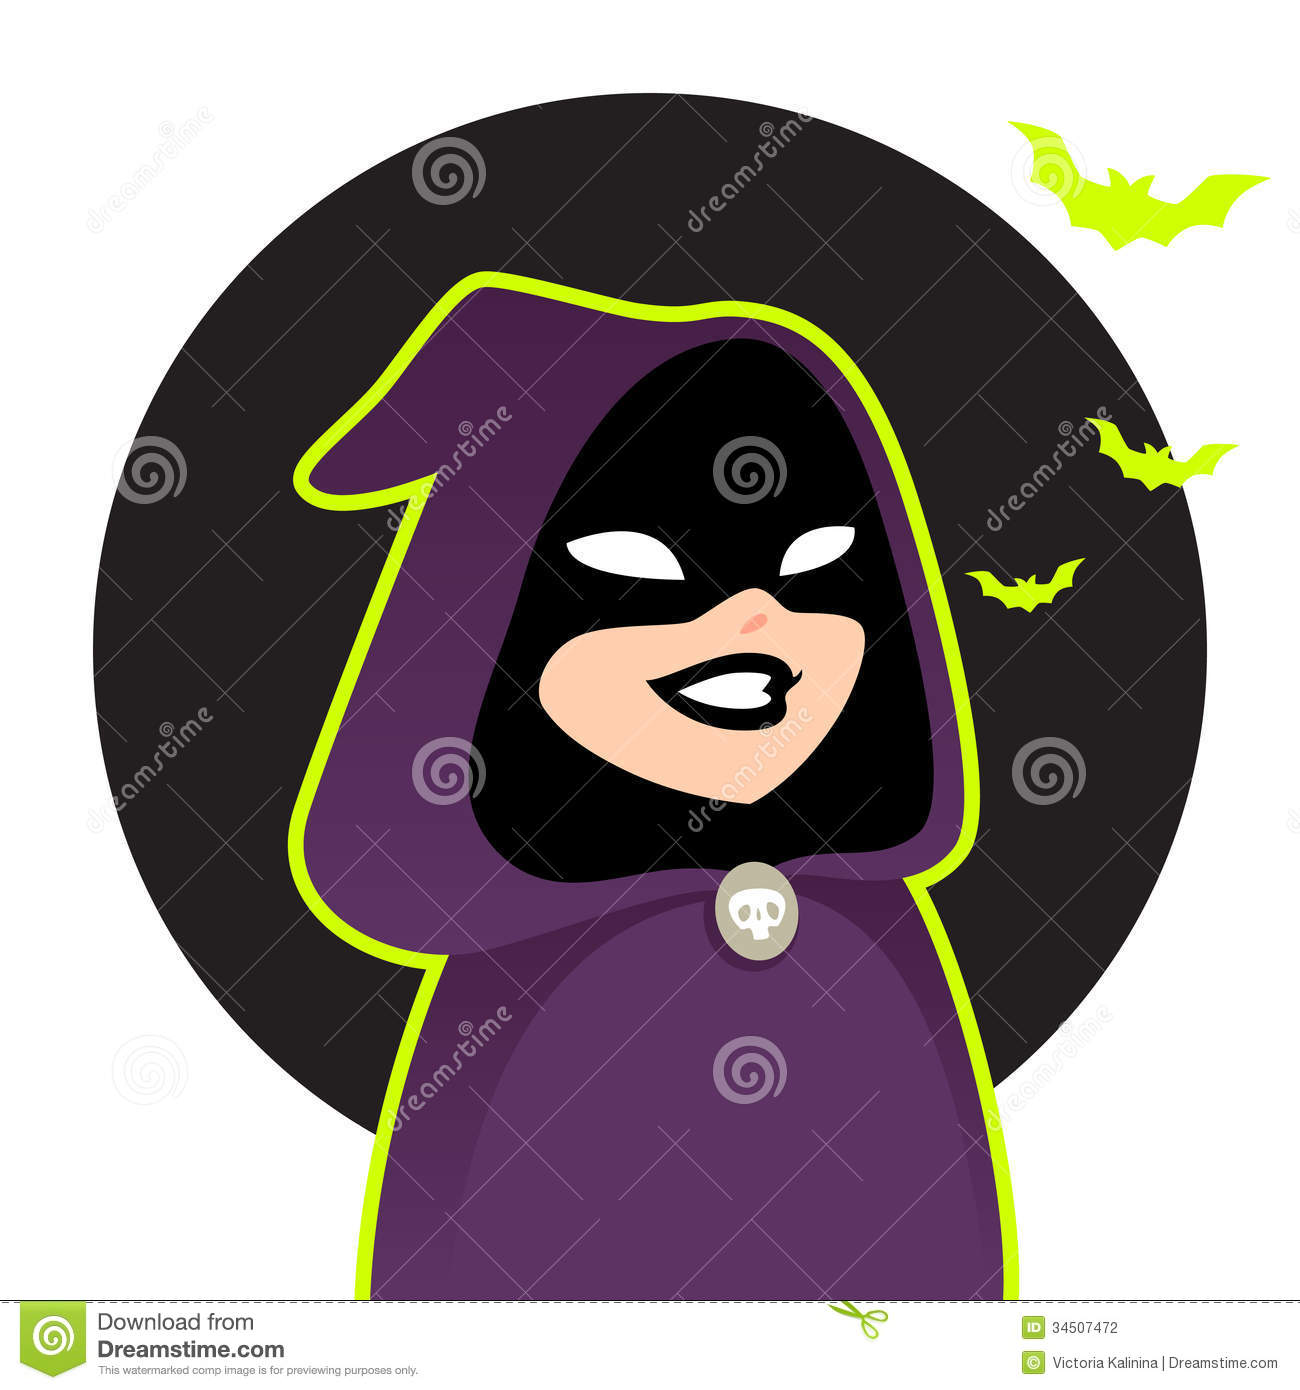 Cartoon Characters Hood : Halloween cartoon character stock vector illustration of